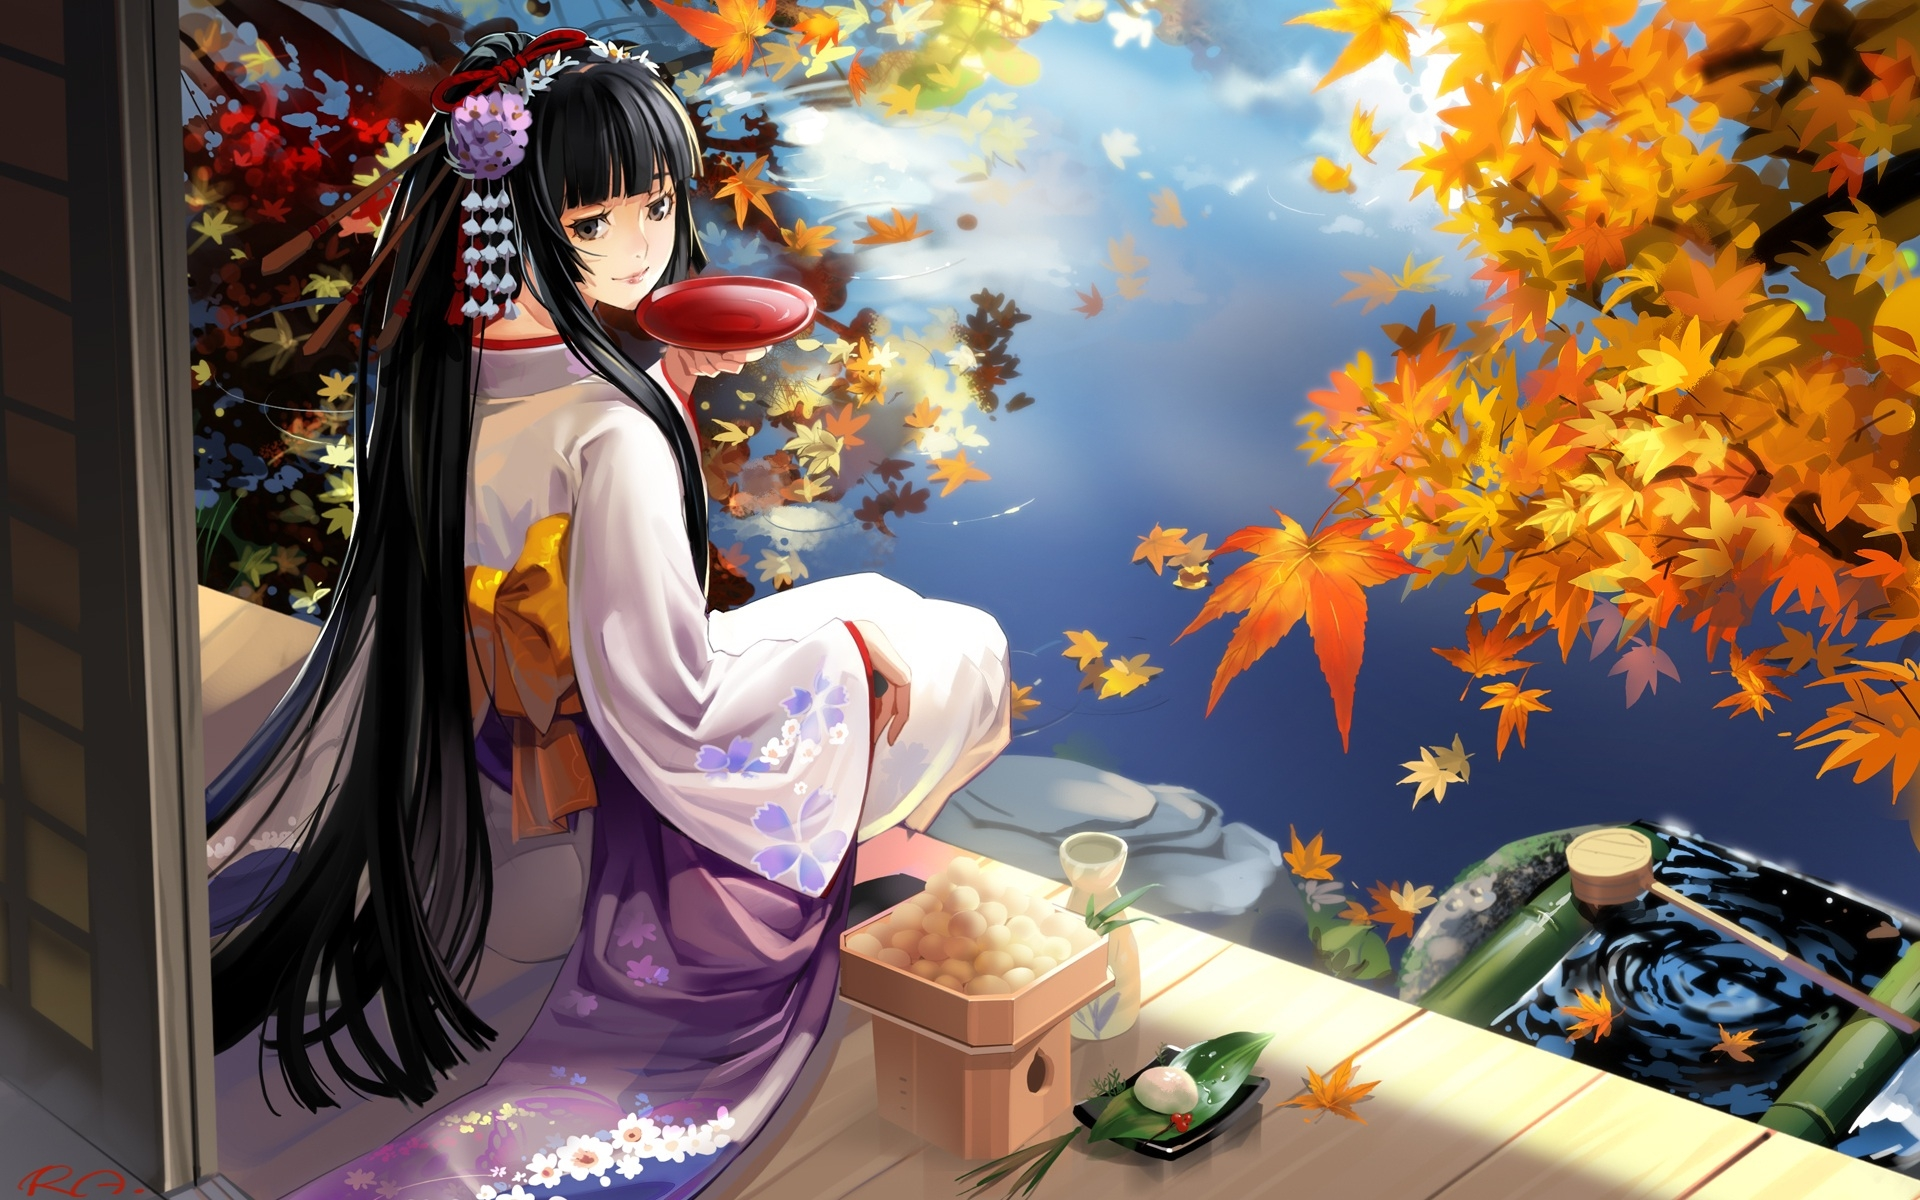 Manga Japan Girl Cute Wallpaper